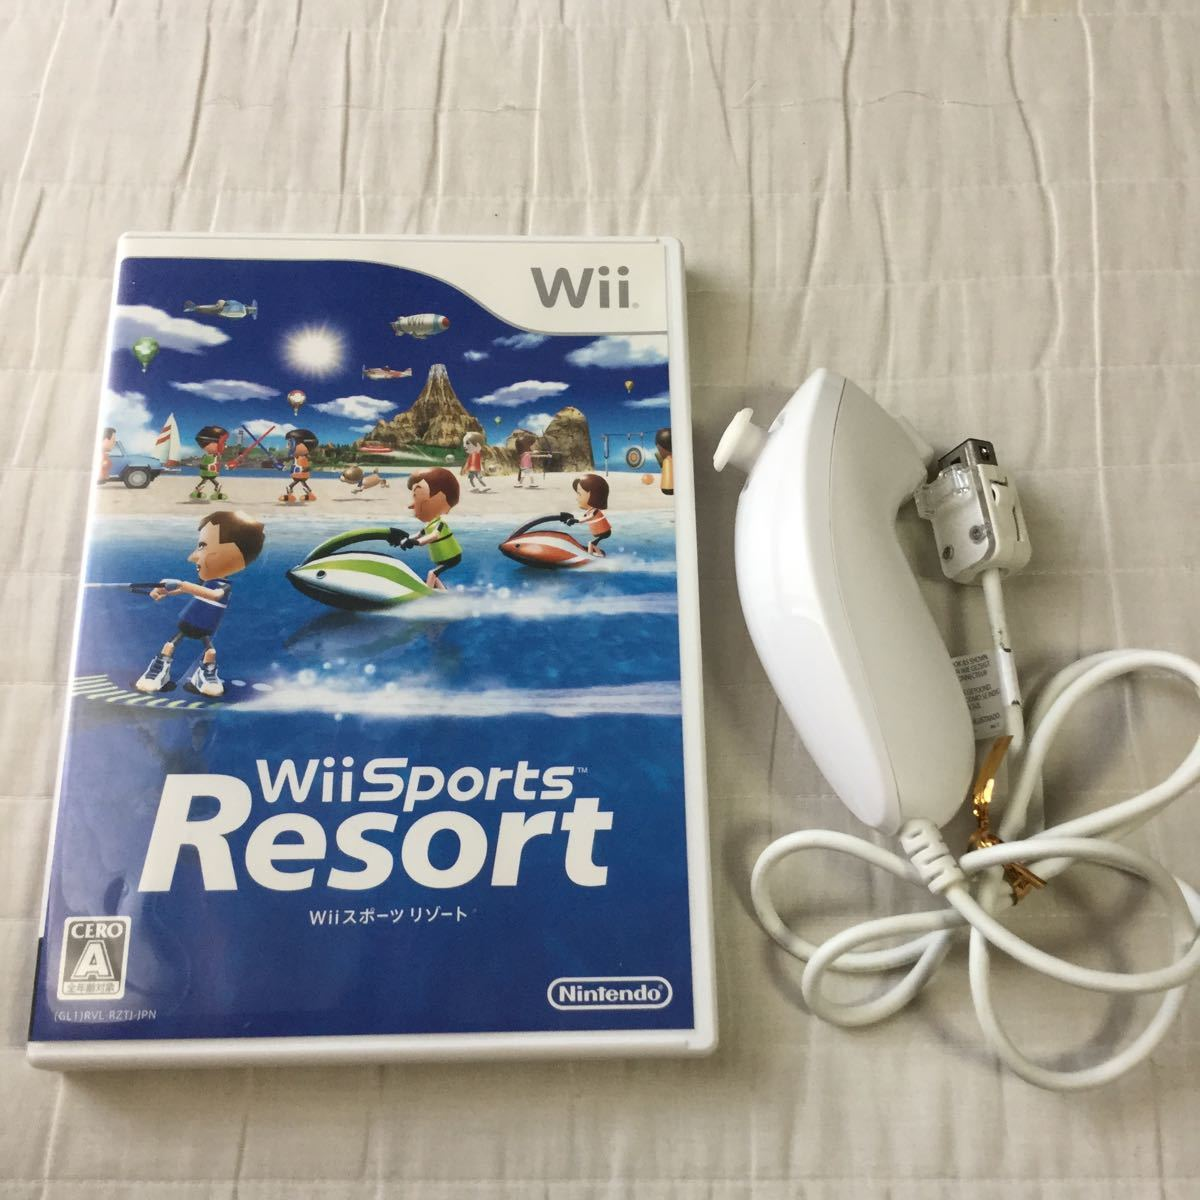 Wiiスポーツリゾート Wiiスポーツ Wii Sports Resort ヌンチャク 即決 迅速発送 匿名取引